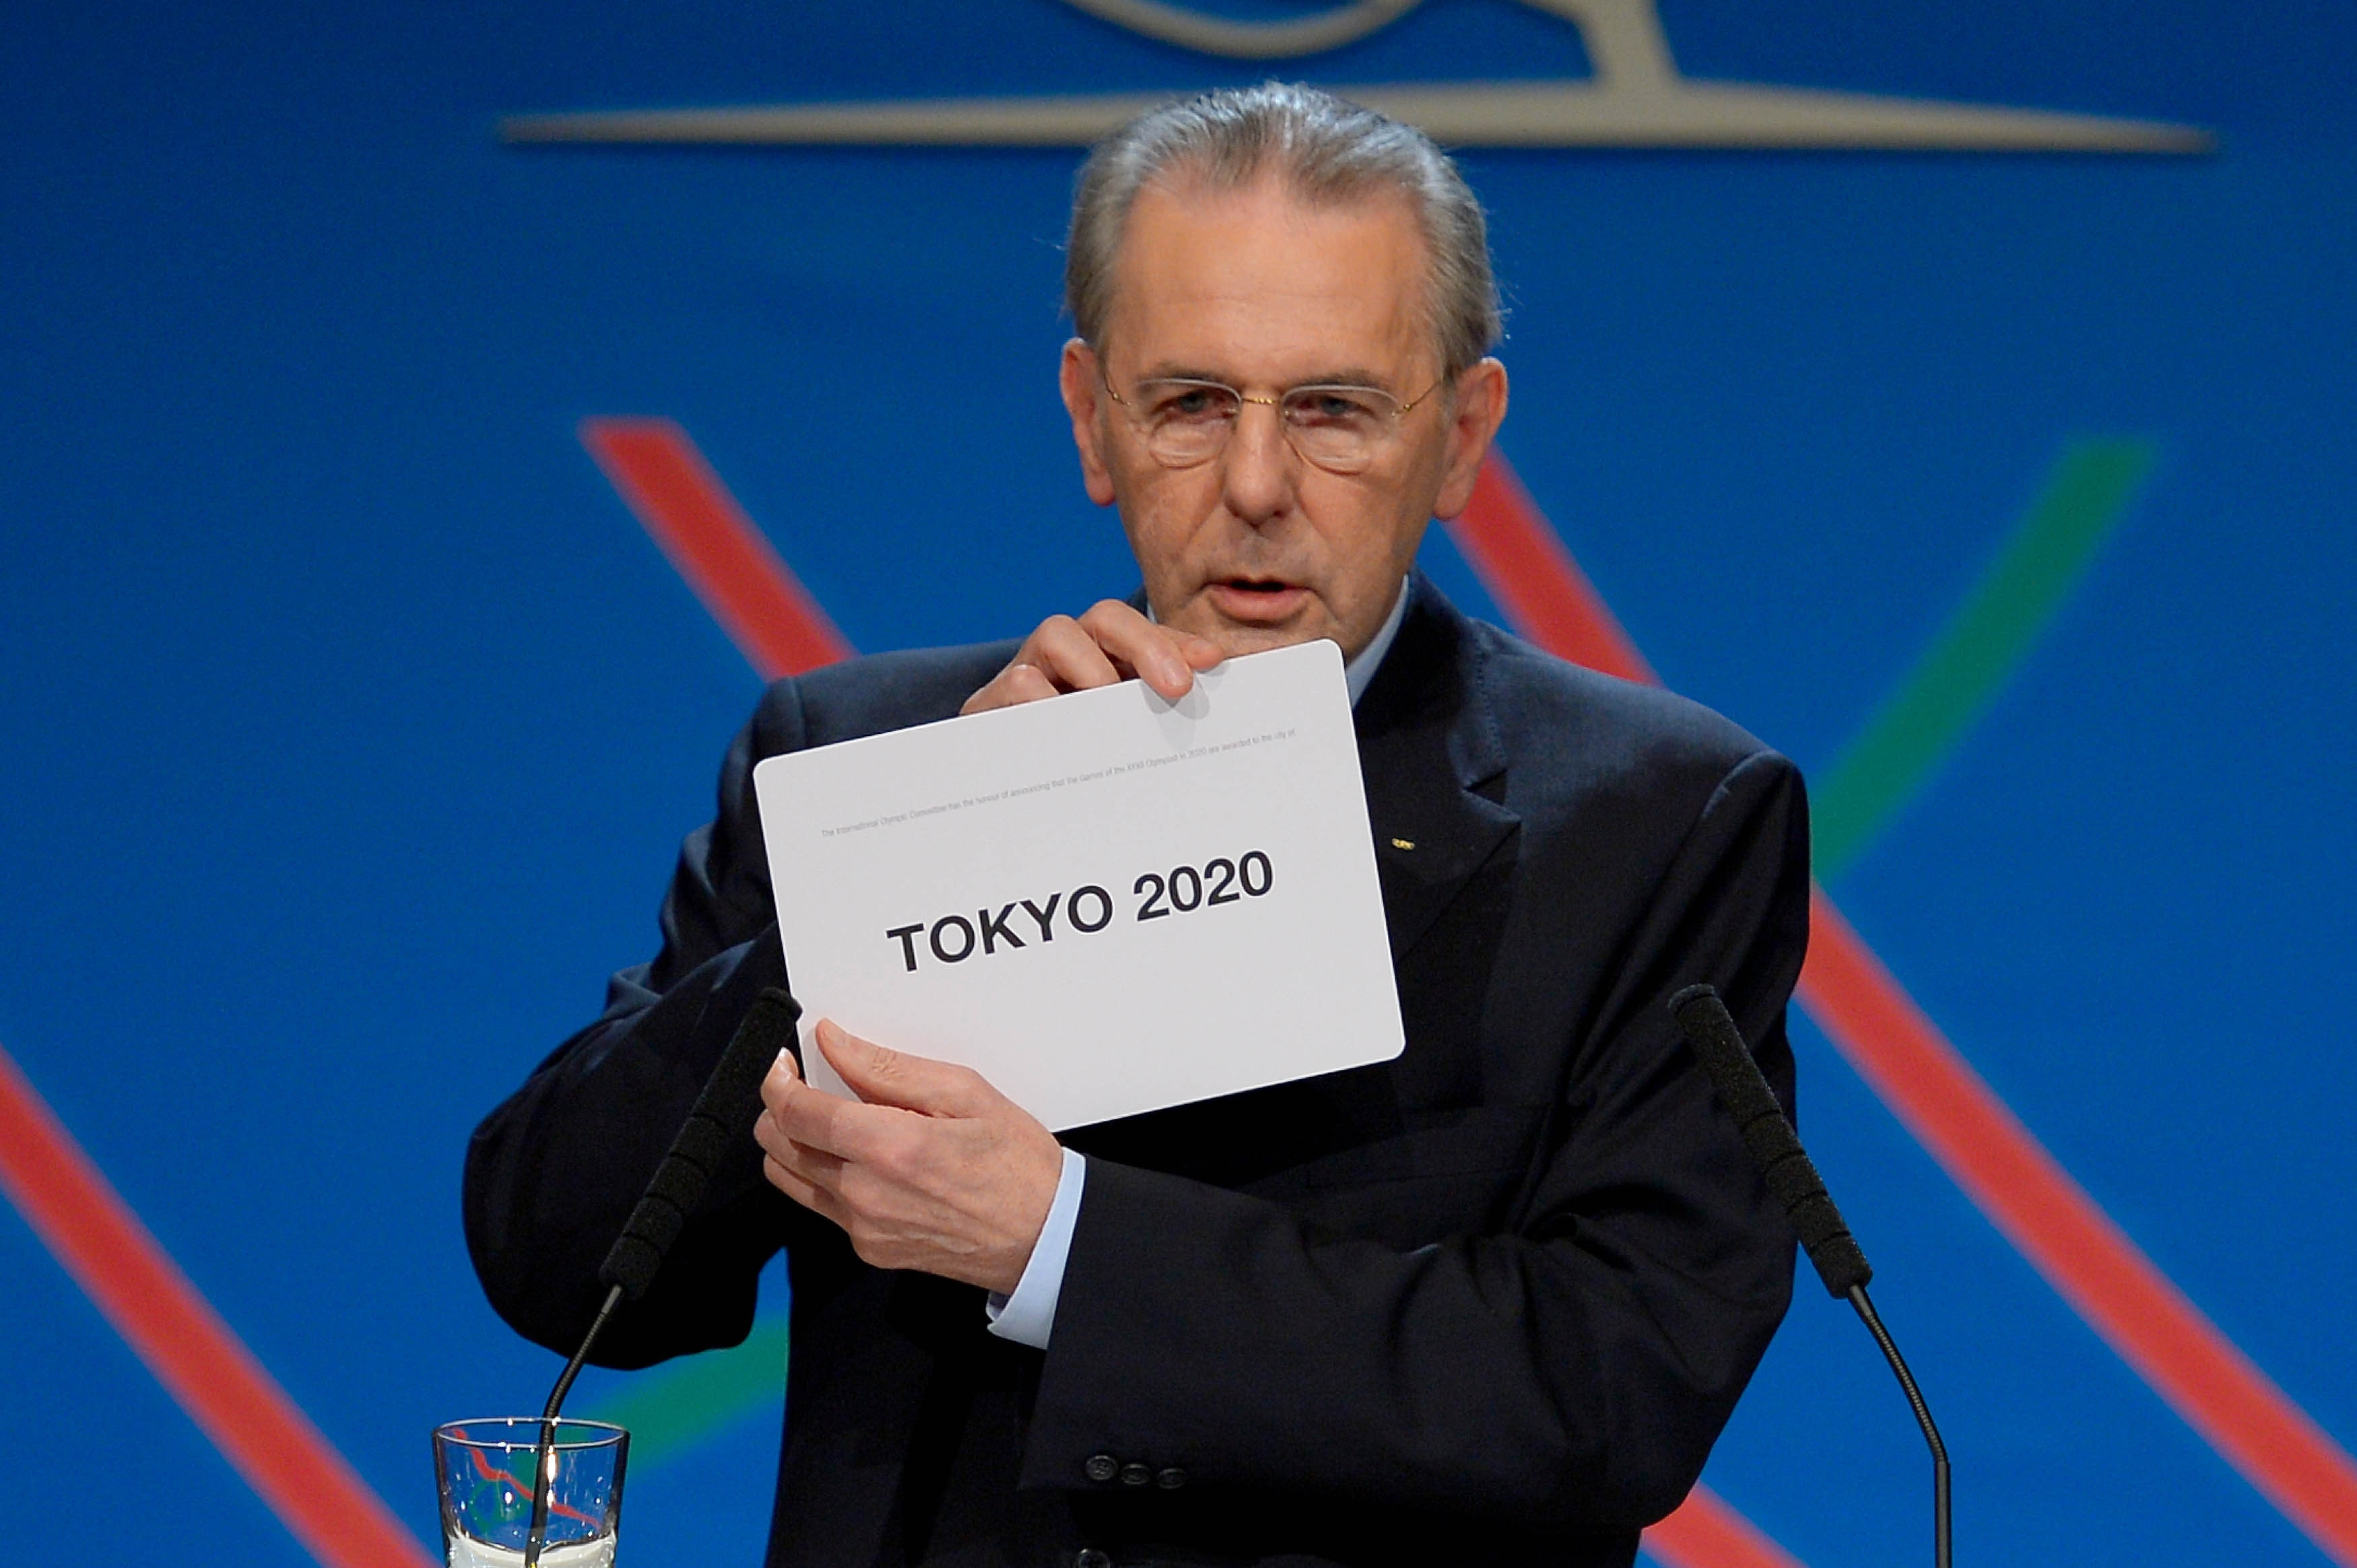 International Olympic Committee President Jacques Rogge shows that Tokyo was selected to host the 2020 Summer Olympics during a session of the IOC in Buenos Aires on Saturday.